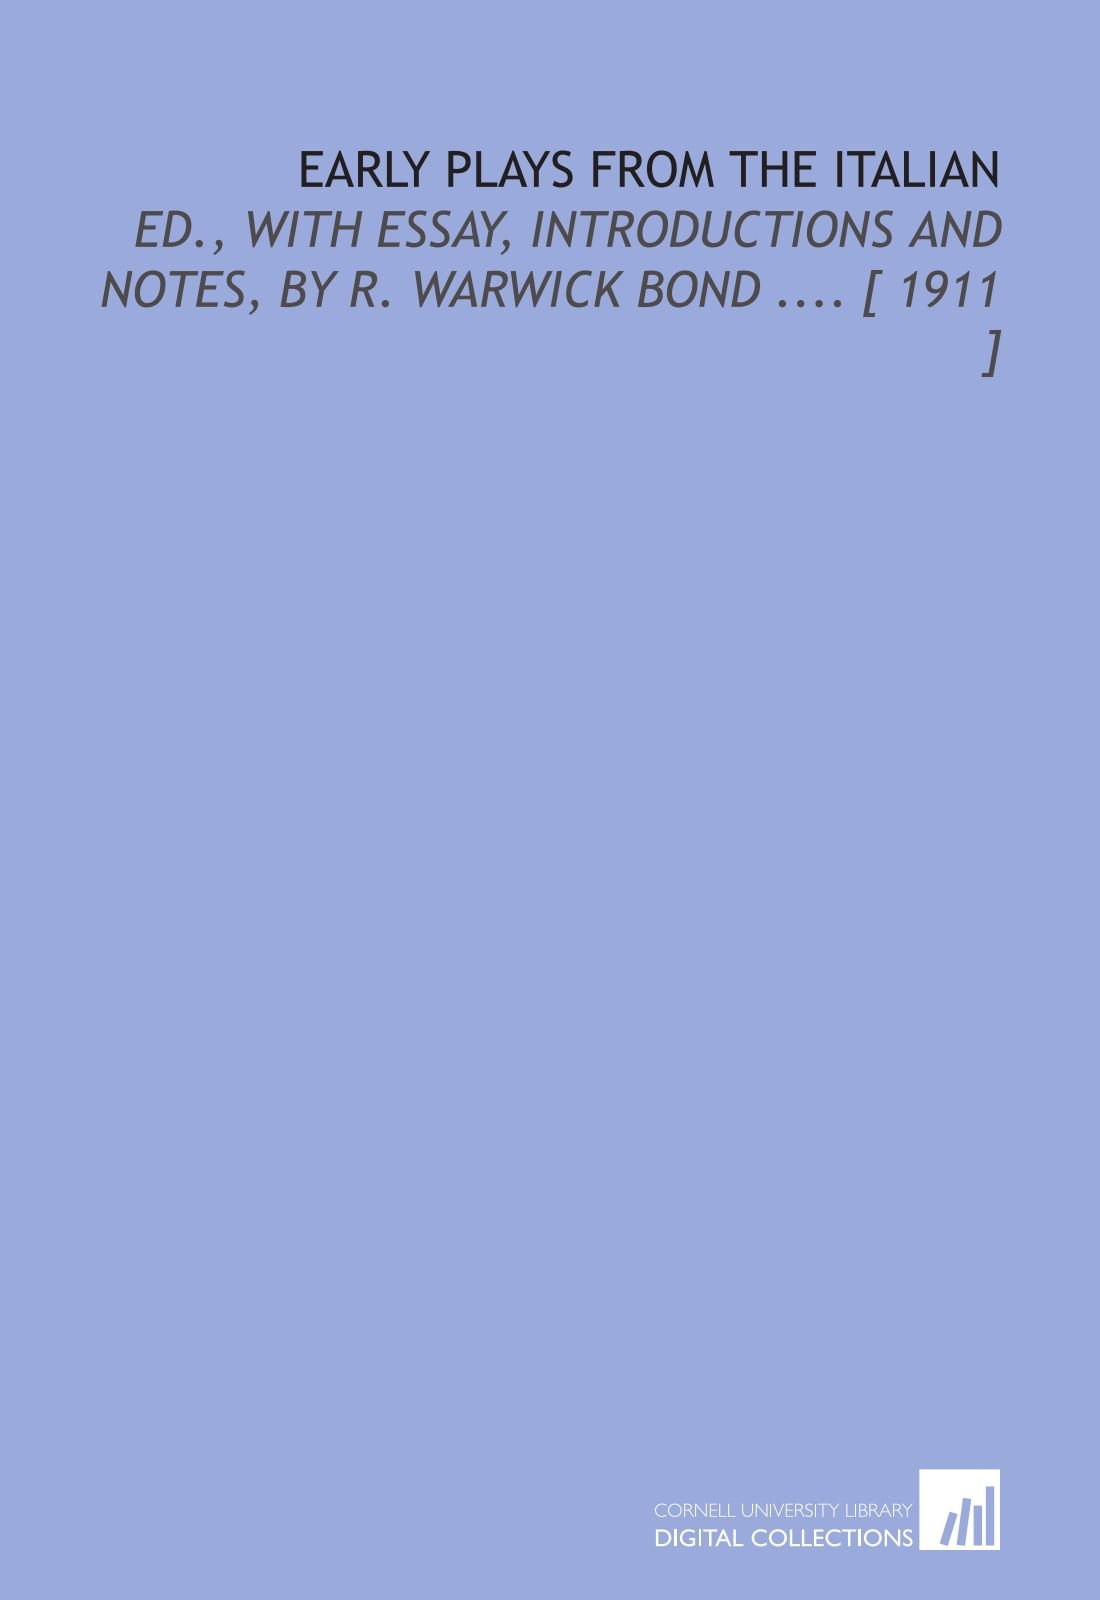 Early Plays From the Italian: Ed., With Essay, Introductions and Notes, by R. Warwick Bond .... [ 1911 ] pdf epub